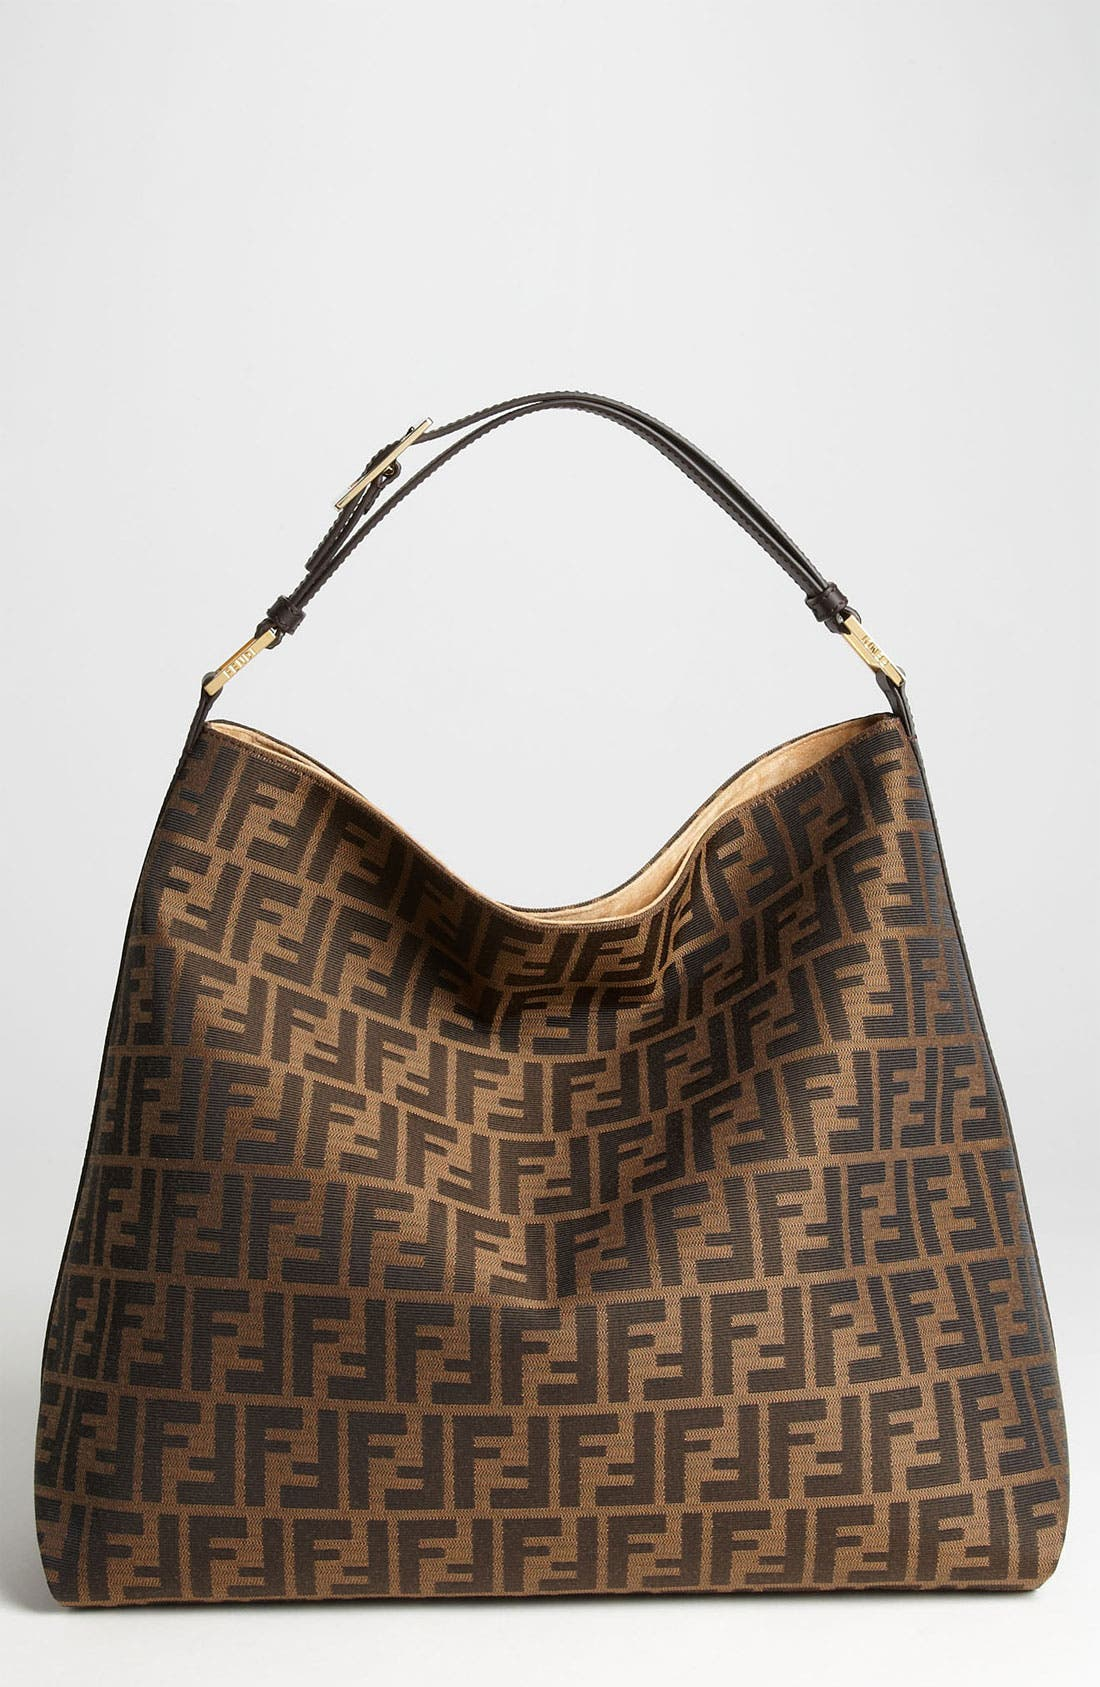 Alternate Image 1 Selected - Fendi 'Zucca' Hobo